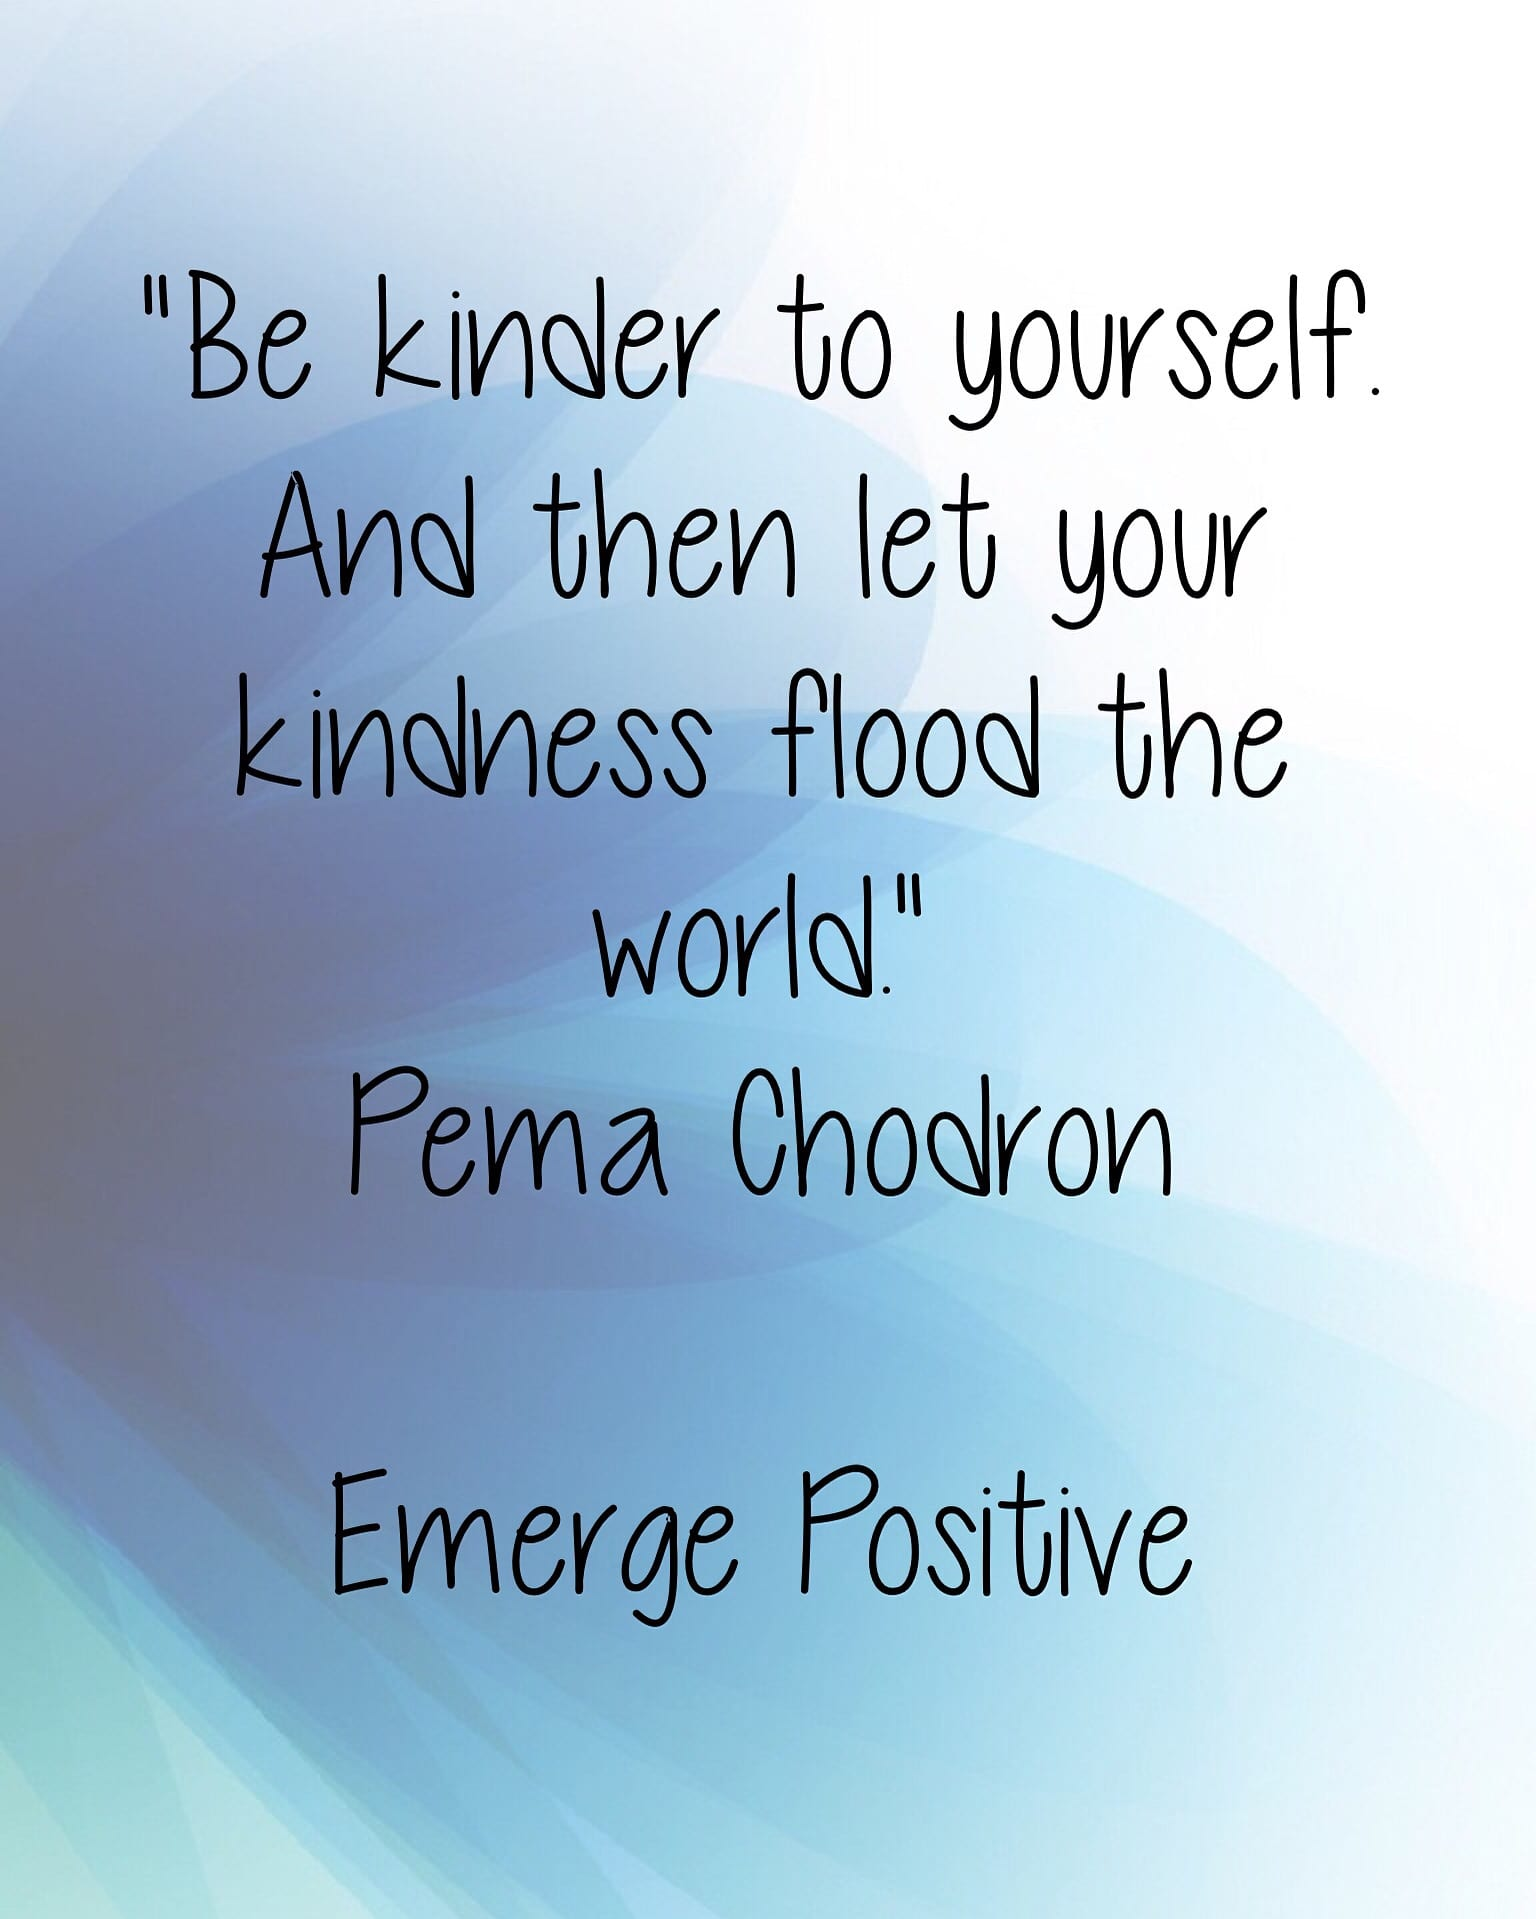 Pema Chodron Quotes Change Really Does Begin With You Emerge Positive  Emerge Positive